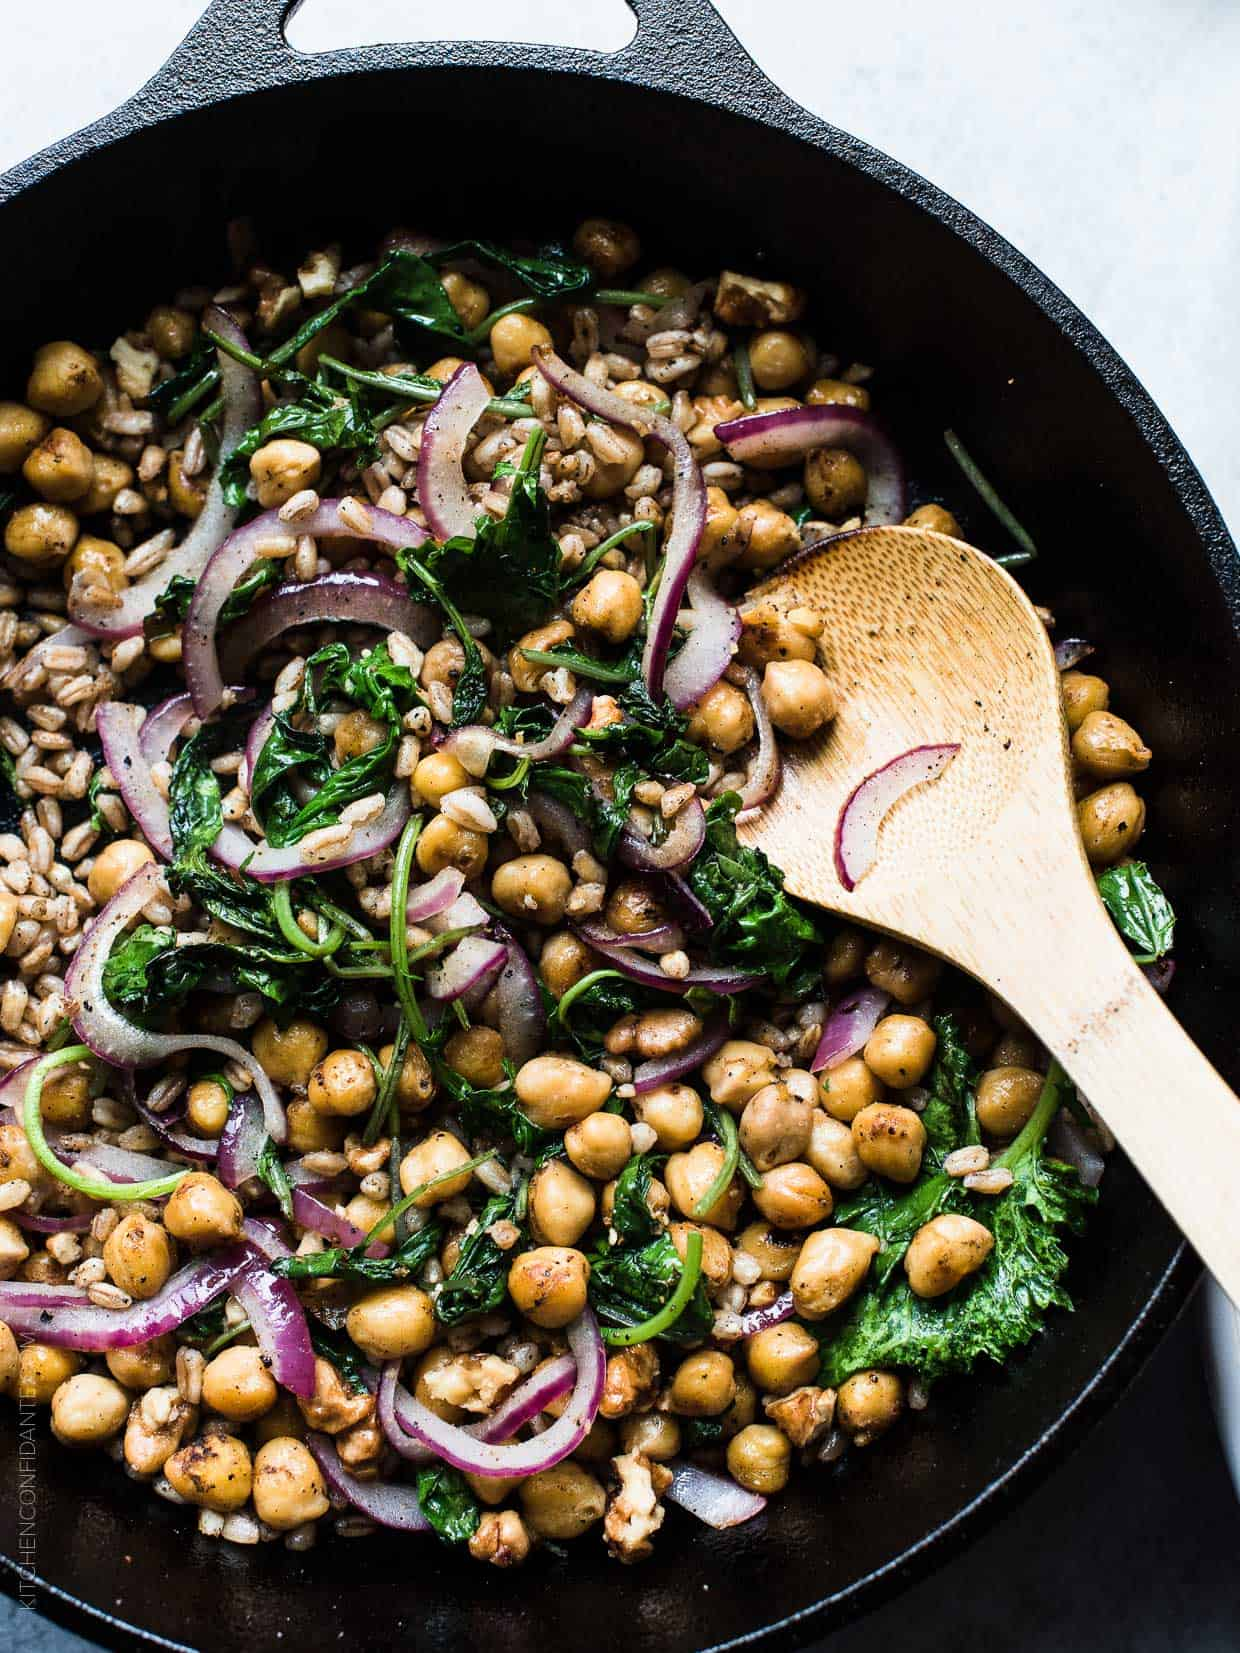 Baby kale, chickpeas, and red onion sautéing in a cast iron skillet.